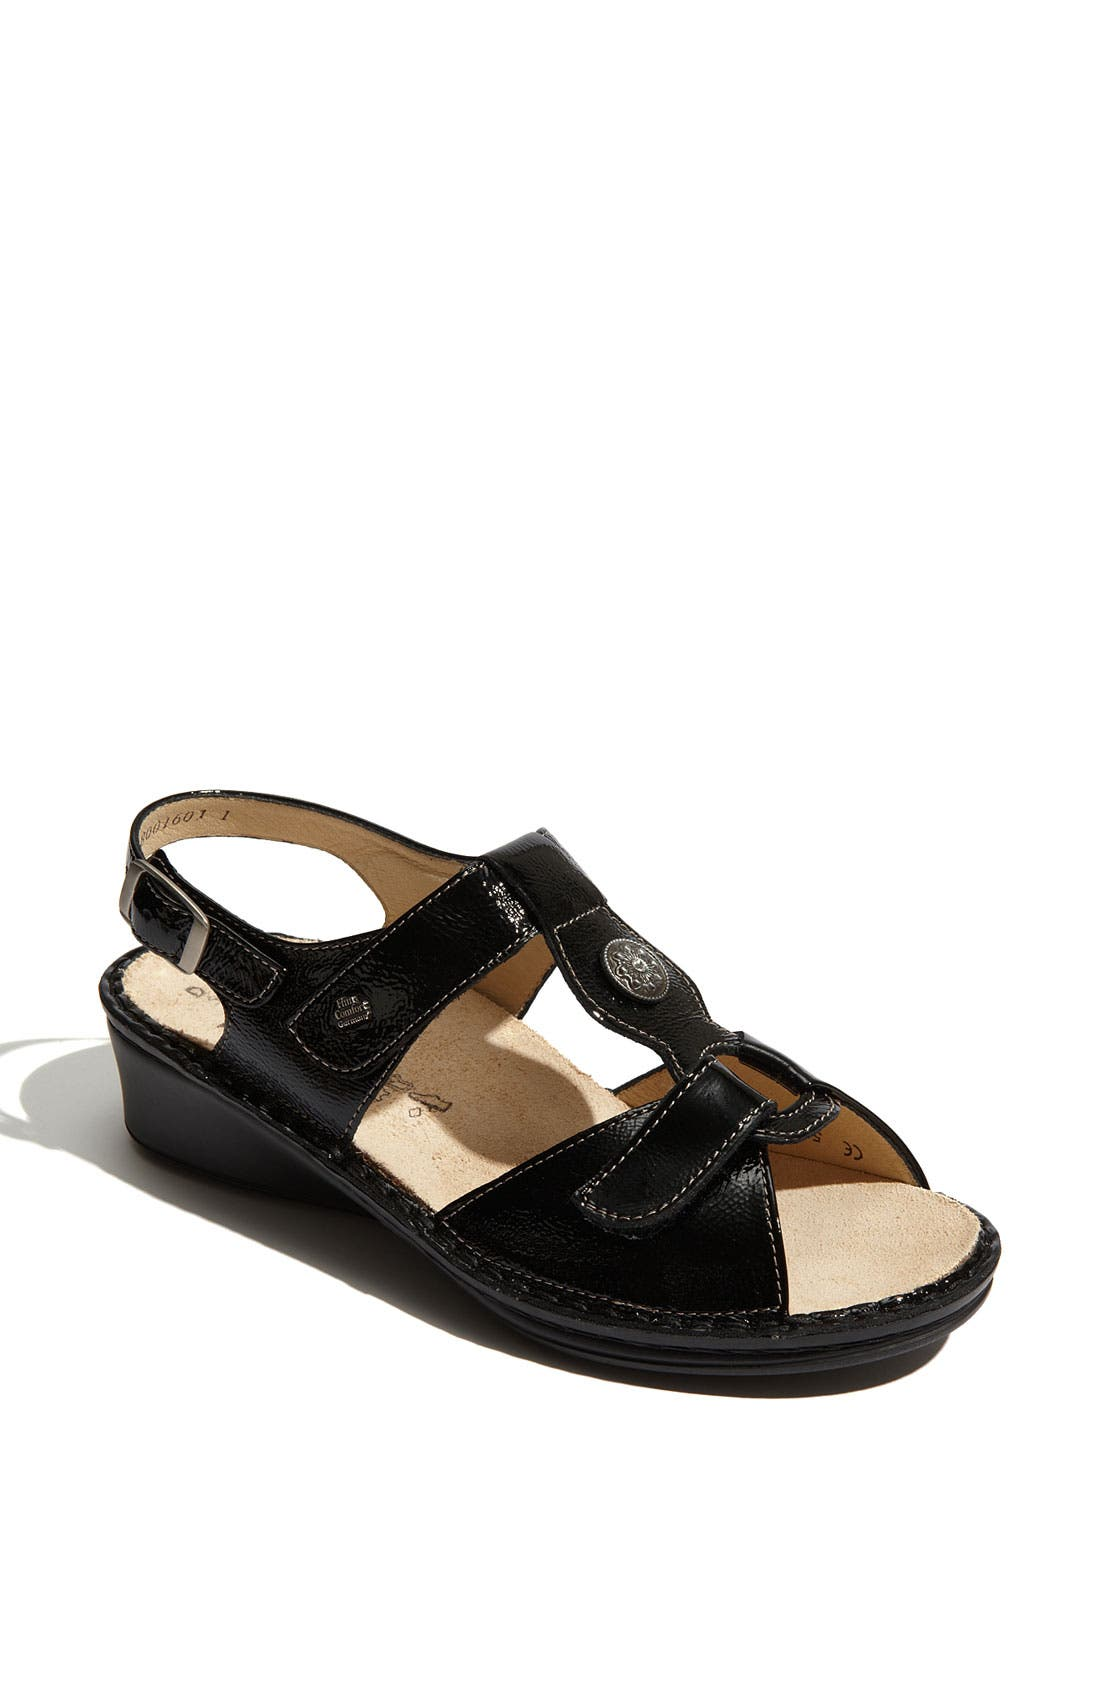 Alternate Image 1 Selected - Finn Comfort 'Adana' Sandal